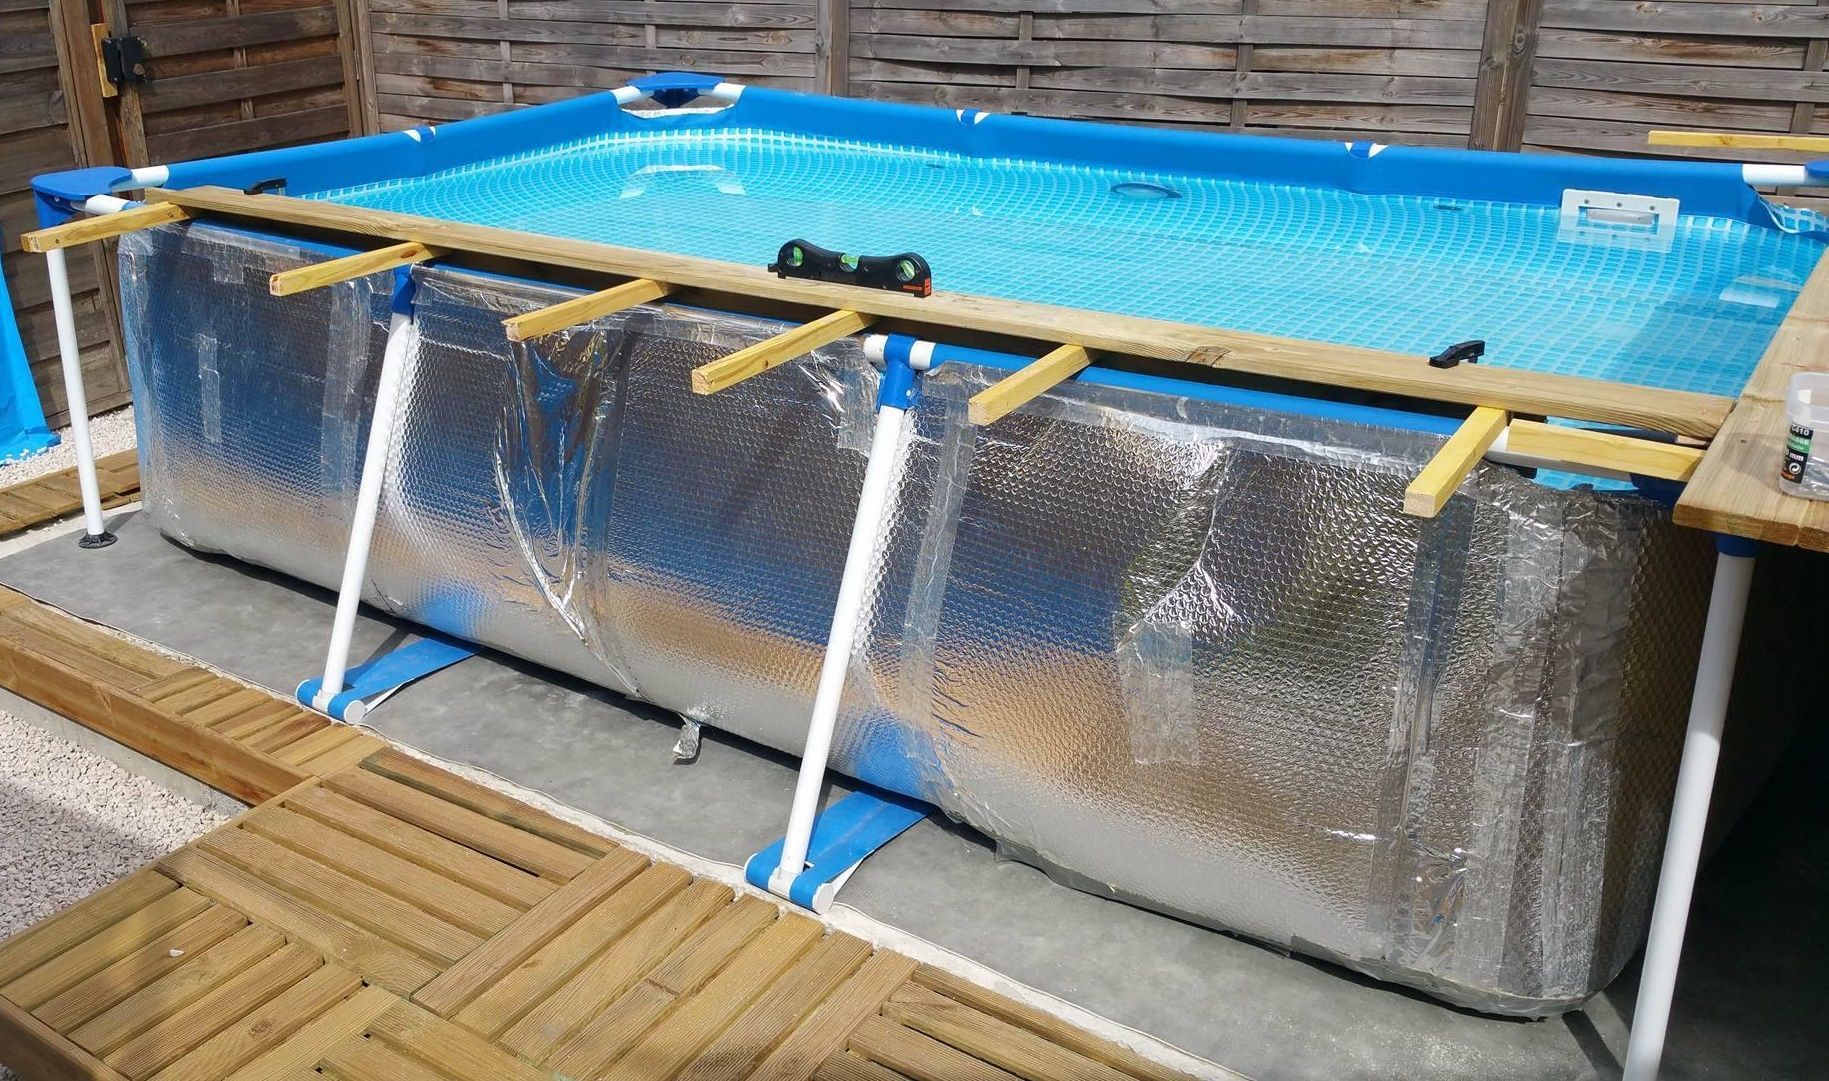 Pool Podest Bauen Épinglé Par Fred Sur Piscine Pinterest Pool Ideen